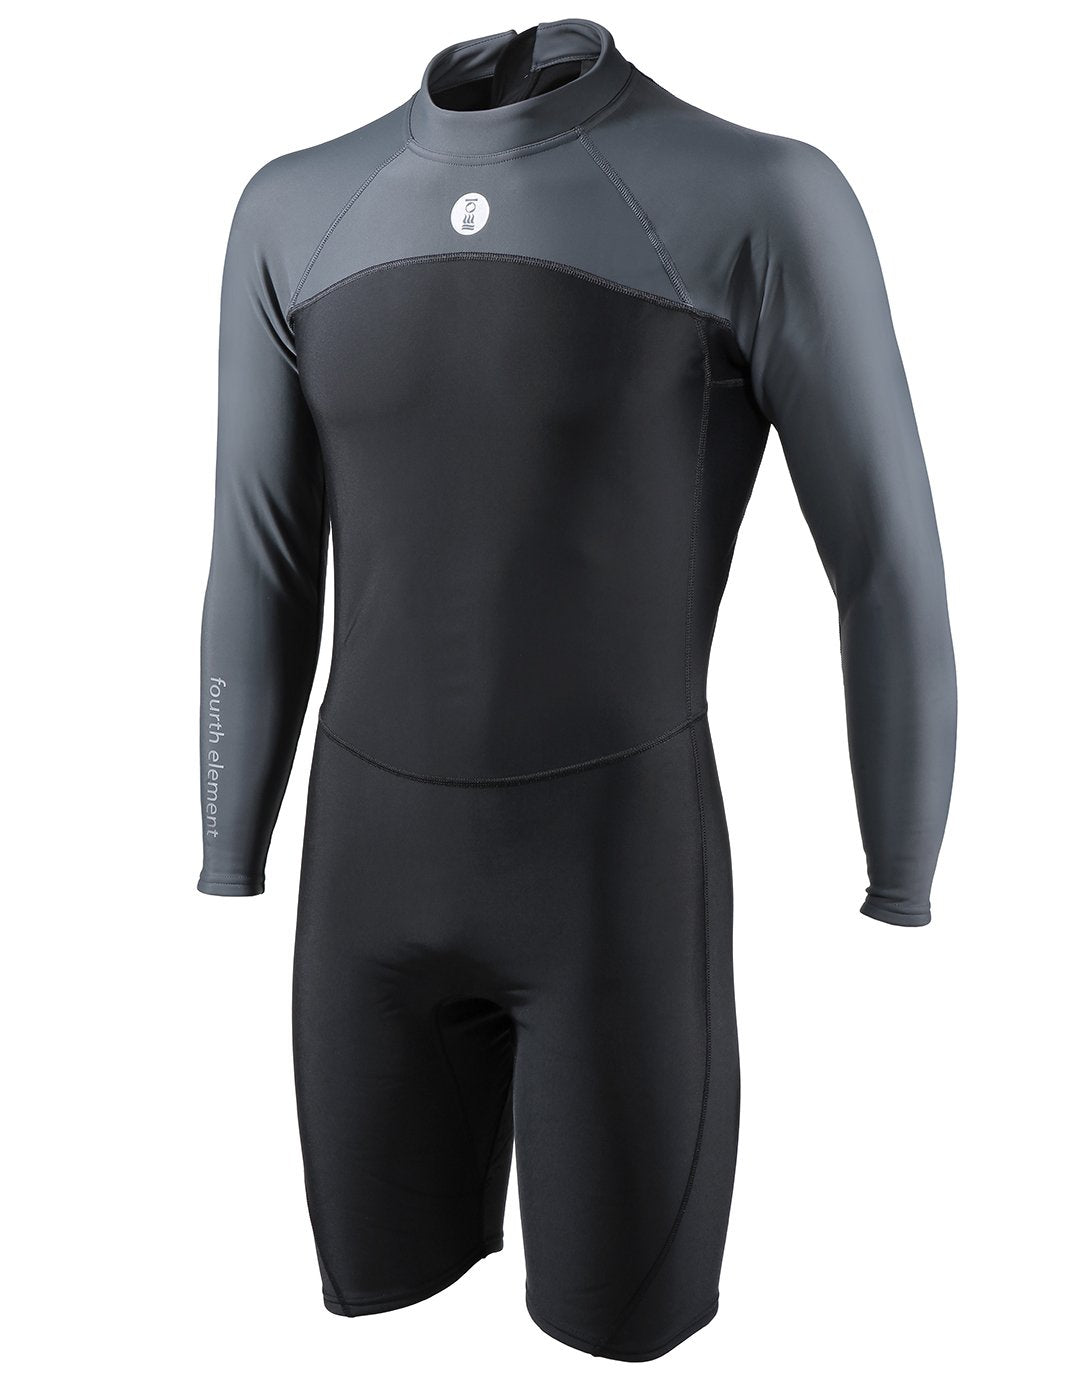 506f84b868a Fourth Element Men s Thermocline Spring Suit